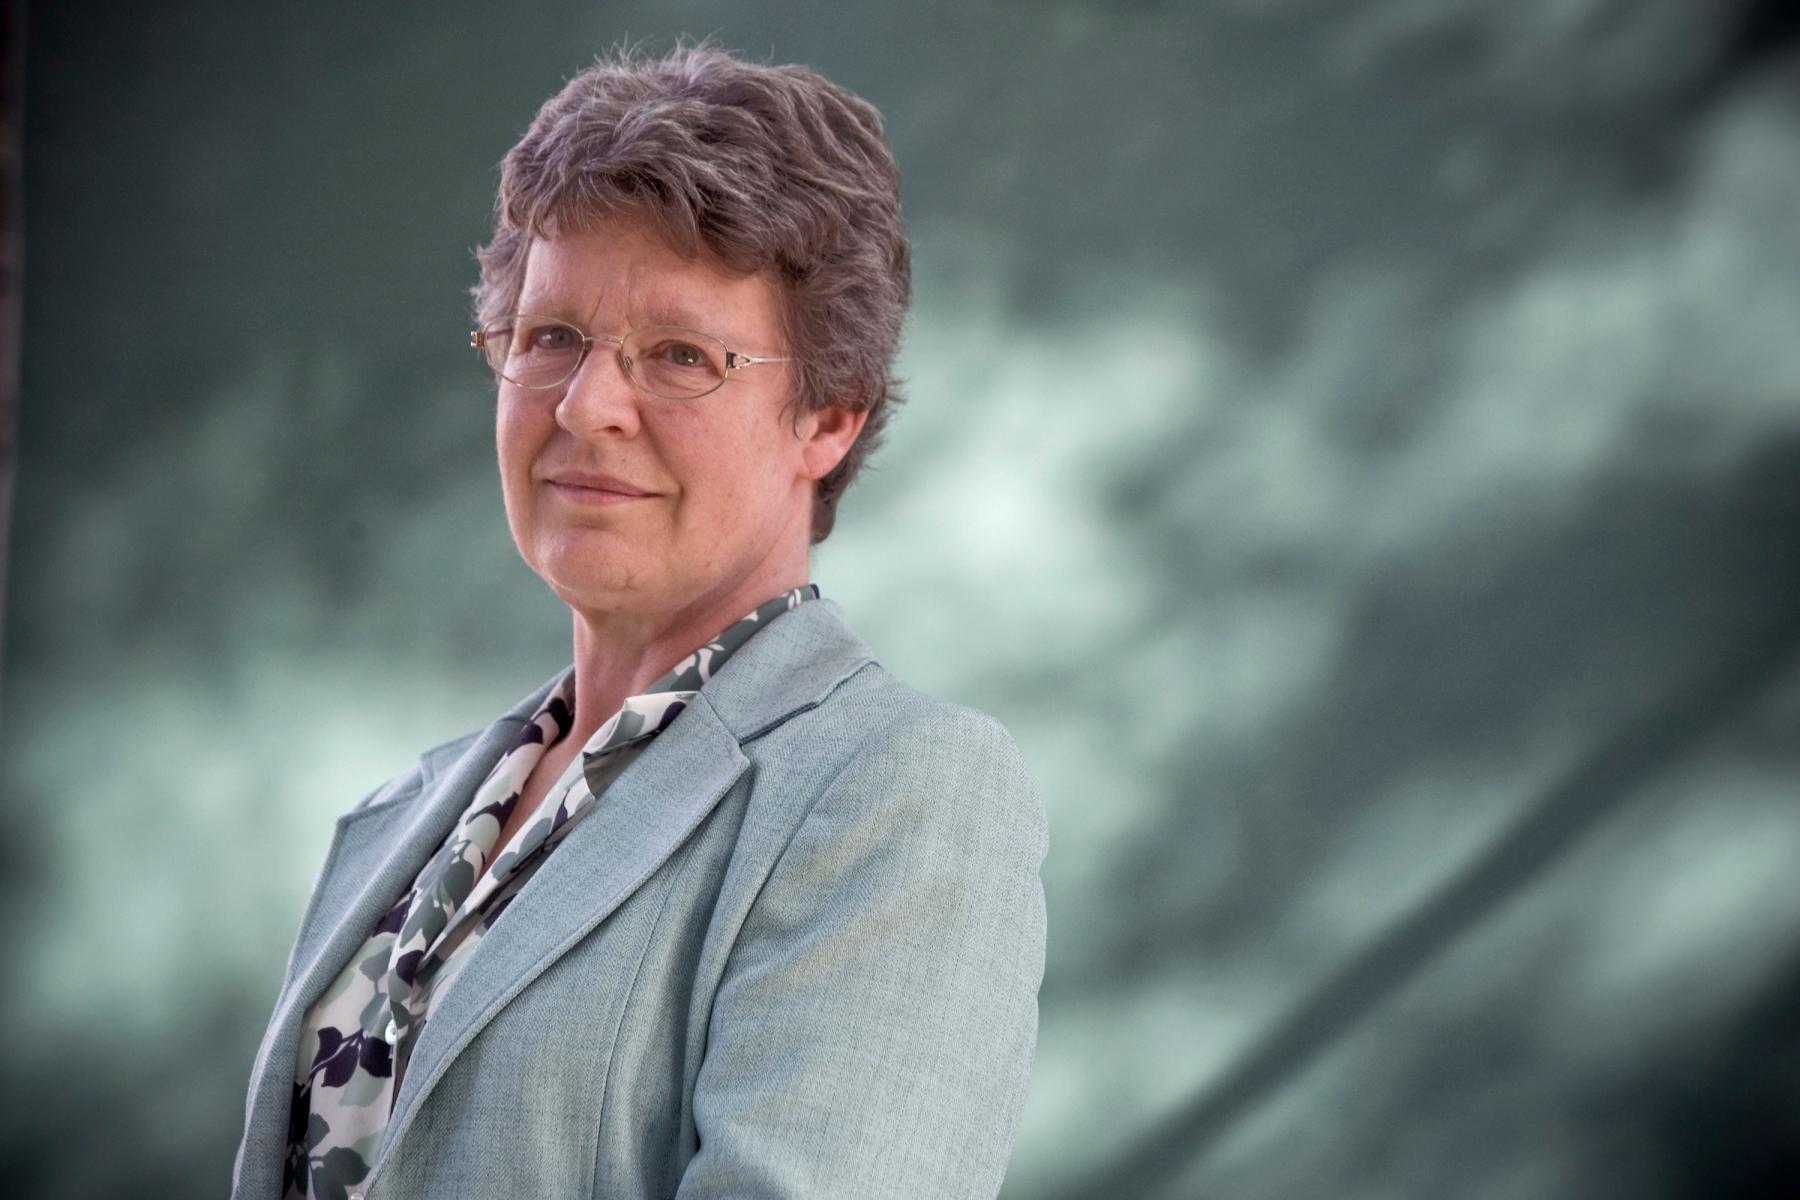 Acclaimed Northern Irish astrophysicist Jocelyn Bell Burnell, pictured at the Edinburgh International Book Festival where she talked about her work which included the discovery of the pulsar. The three-week event is the world's biggest literary festival and is held during the annual Edinburgh Festival. The 2011 event featured talks and presentations by more than 500 authors from around the world. (Photo by Colin McPherson/Corbis via Getty Images)